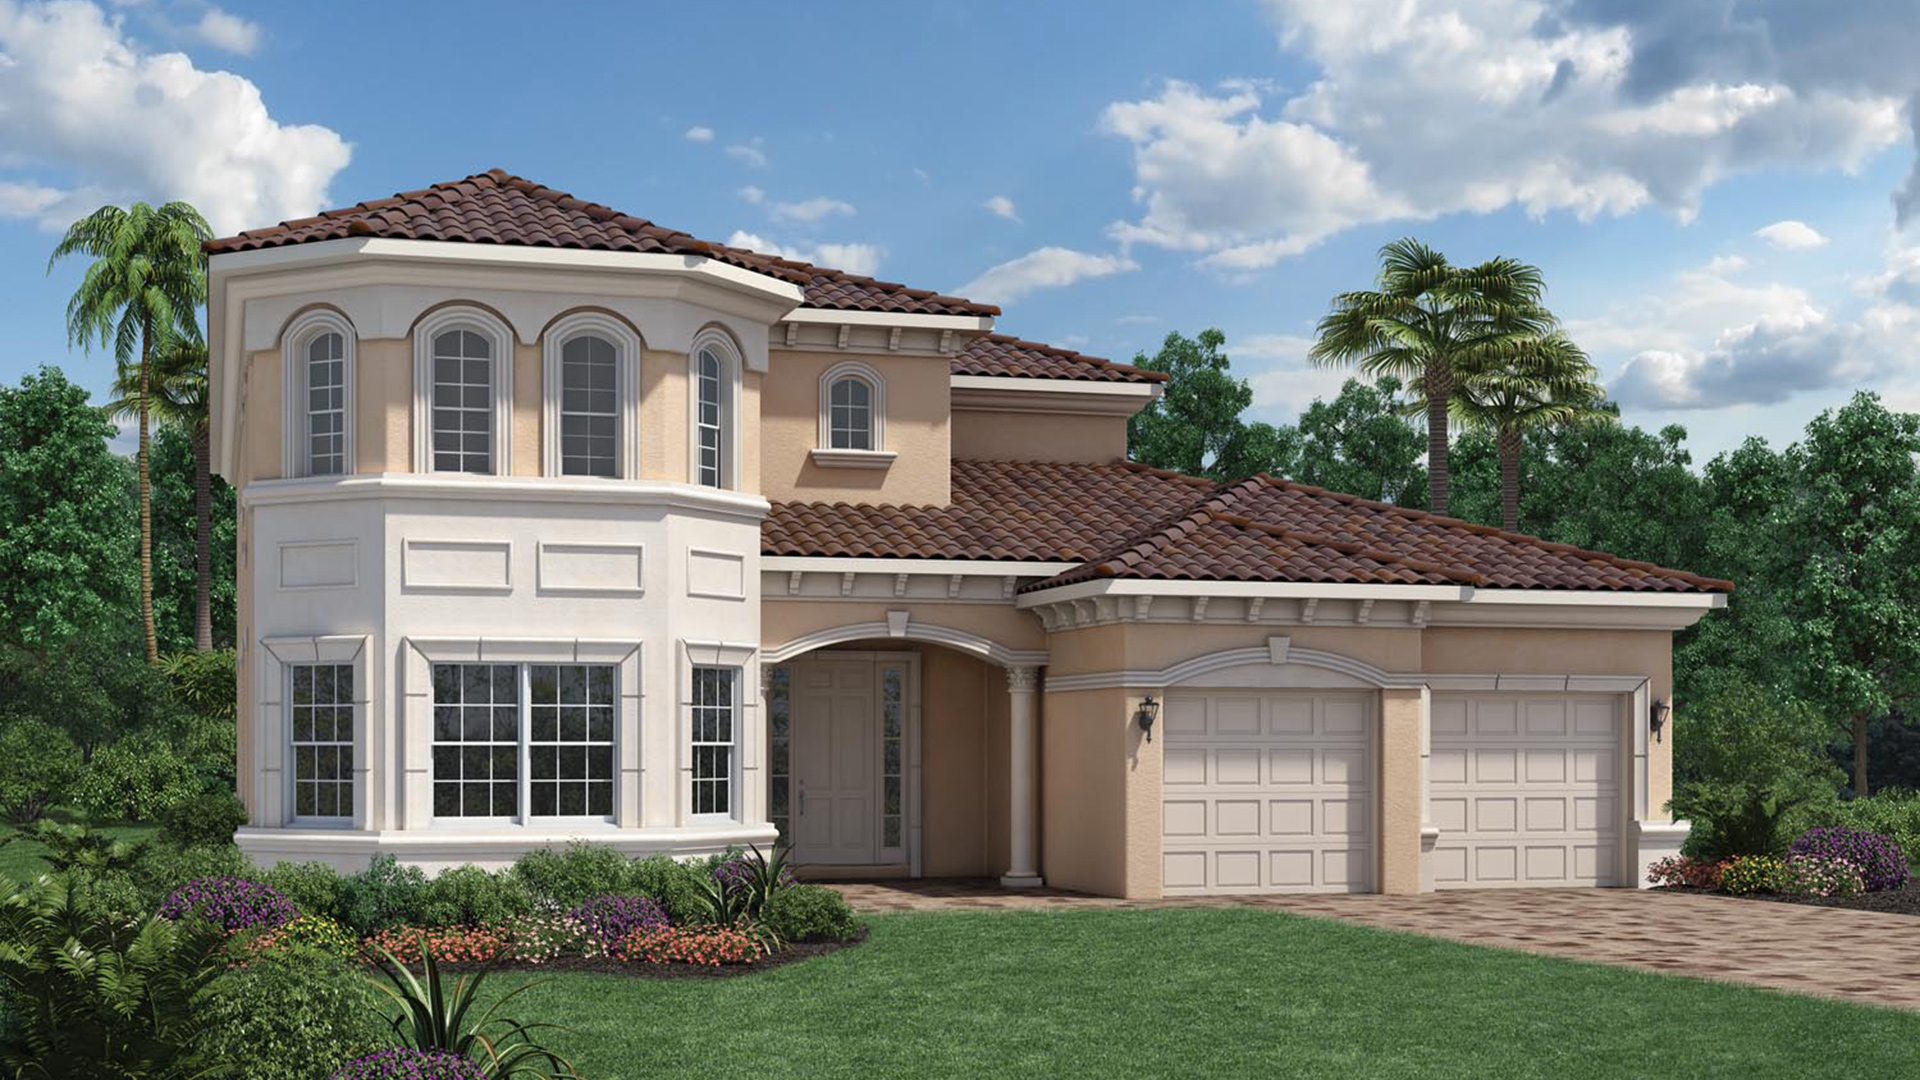 Jupiter country club the heritage collection the for Country house collections